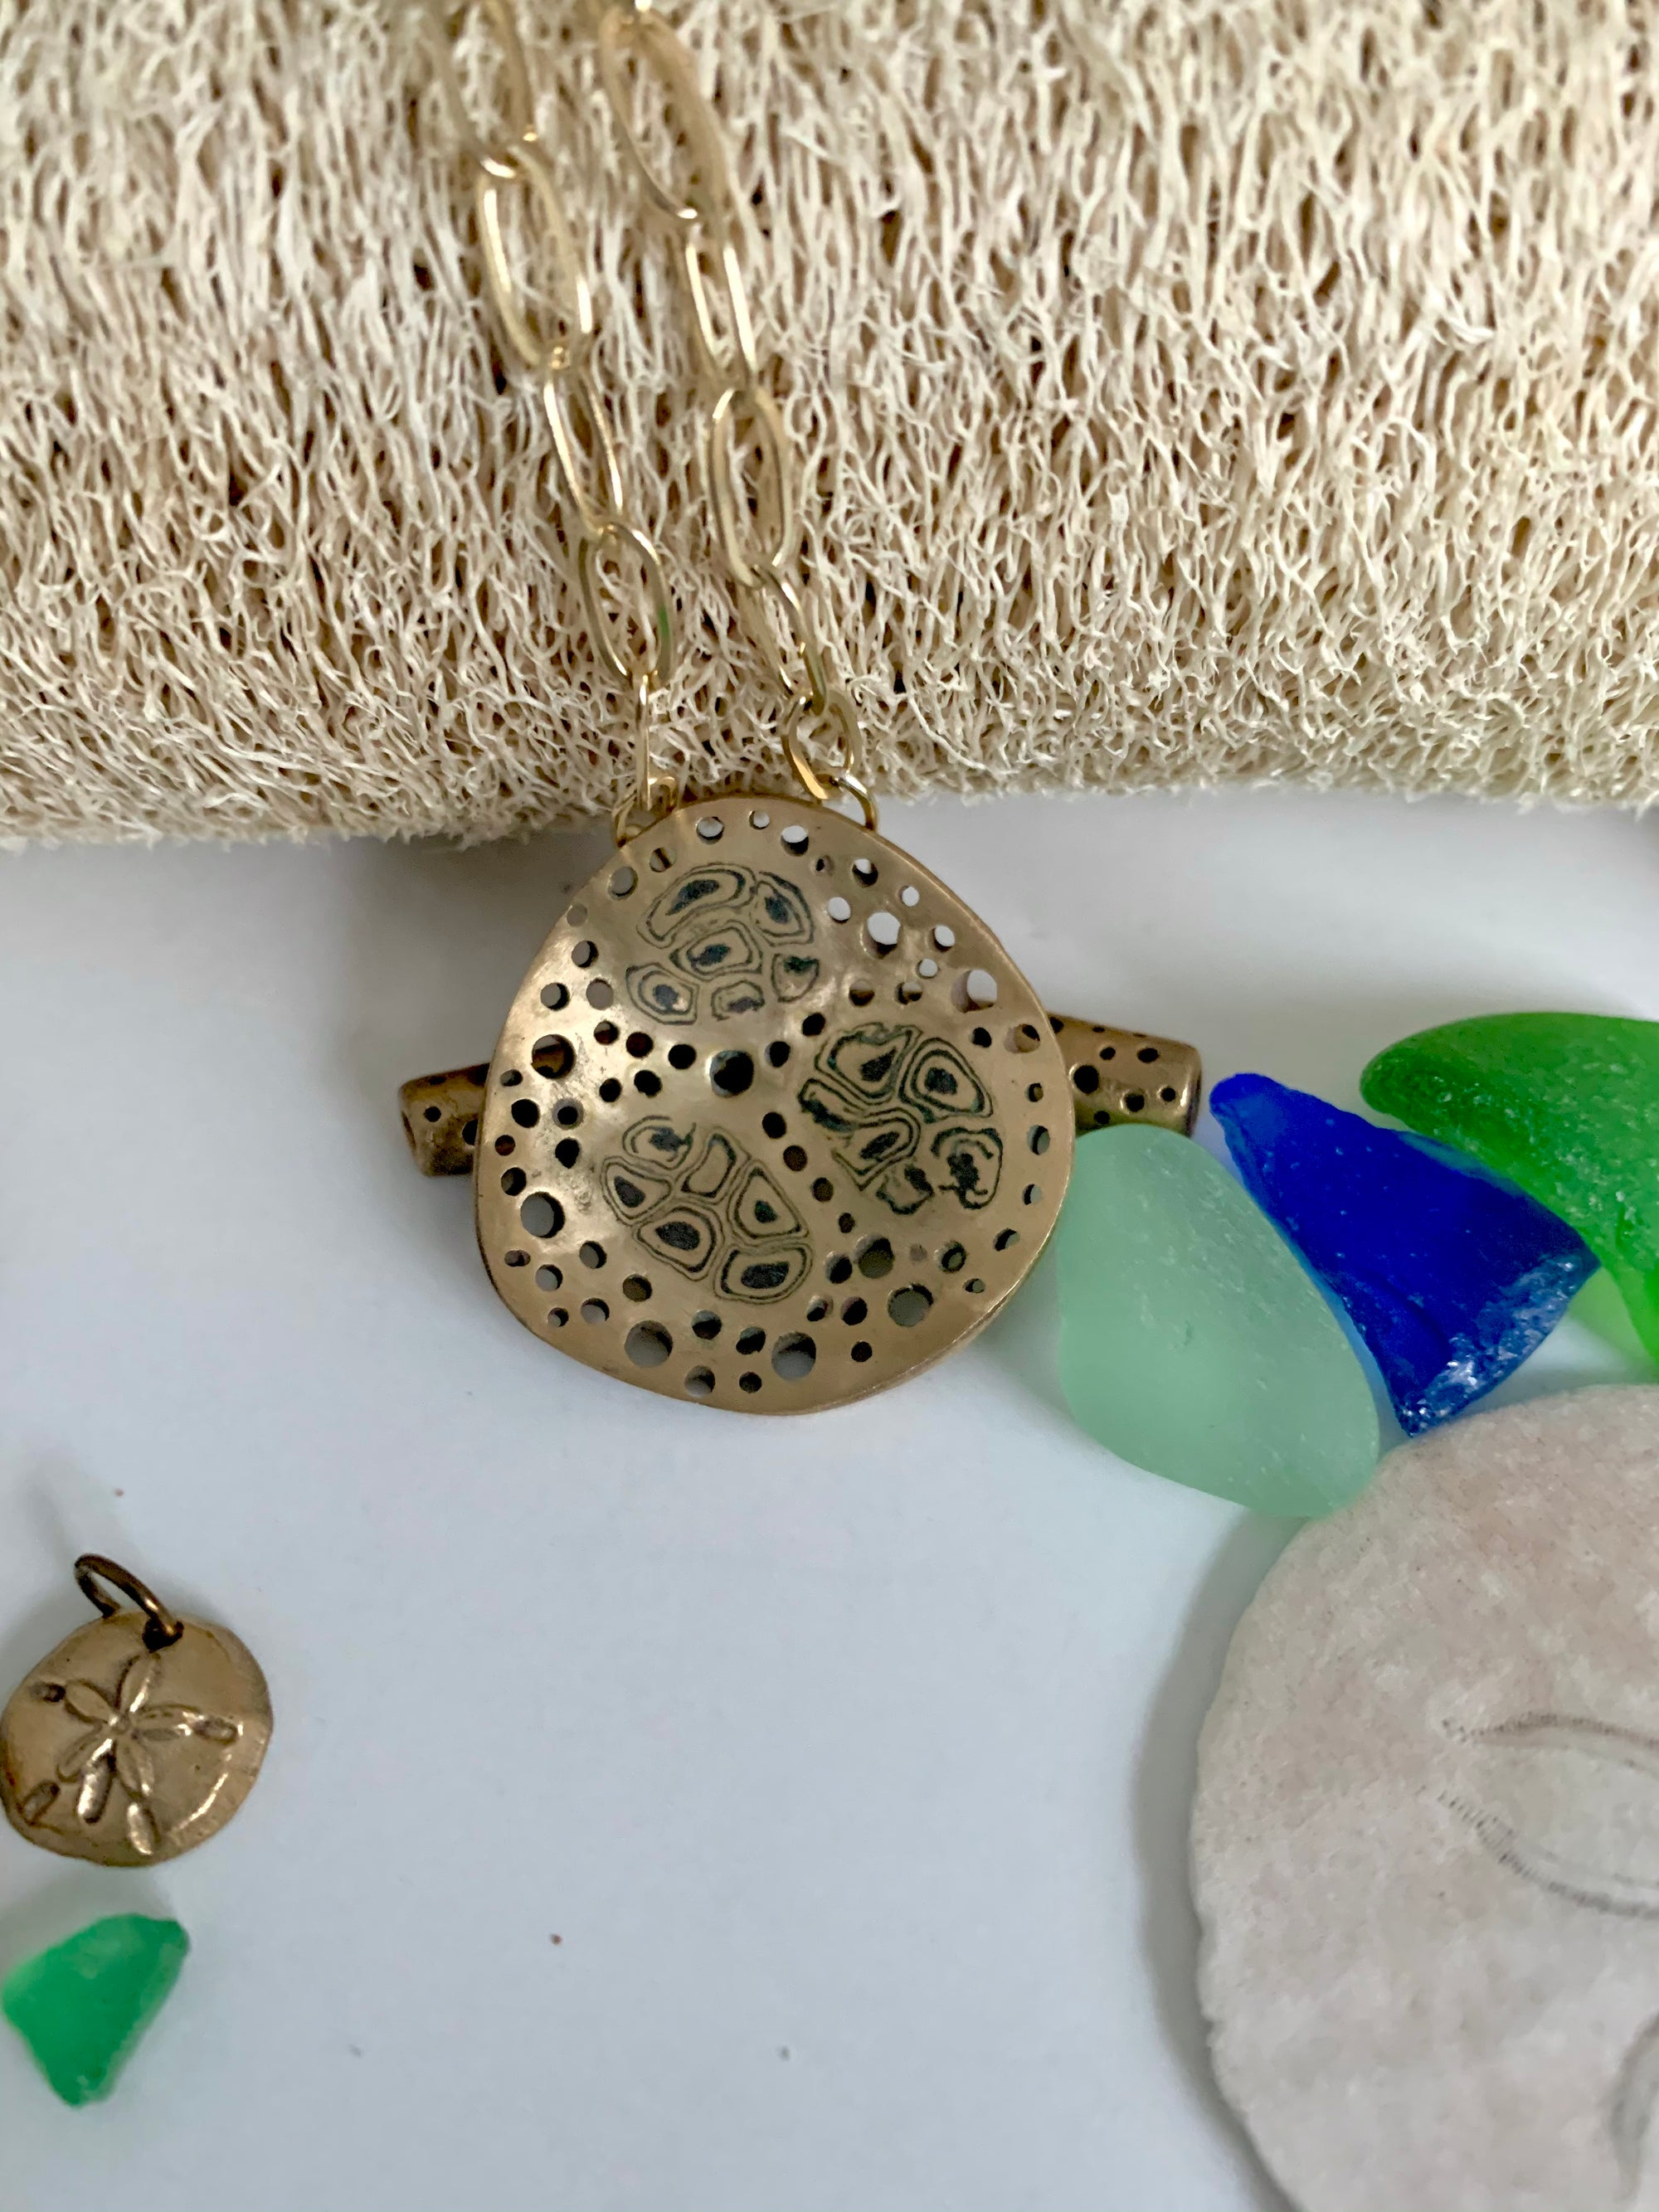 One of a kind art jewelry necklace inspired by loofah sponge